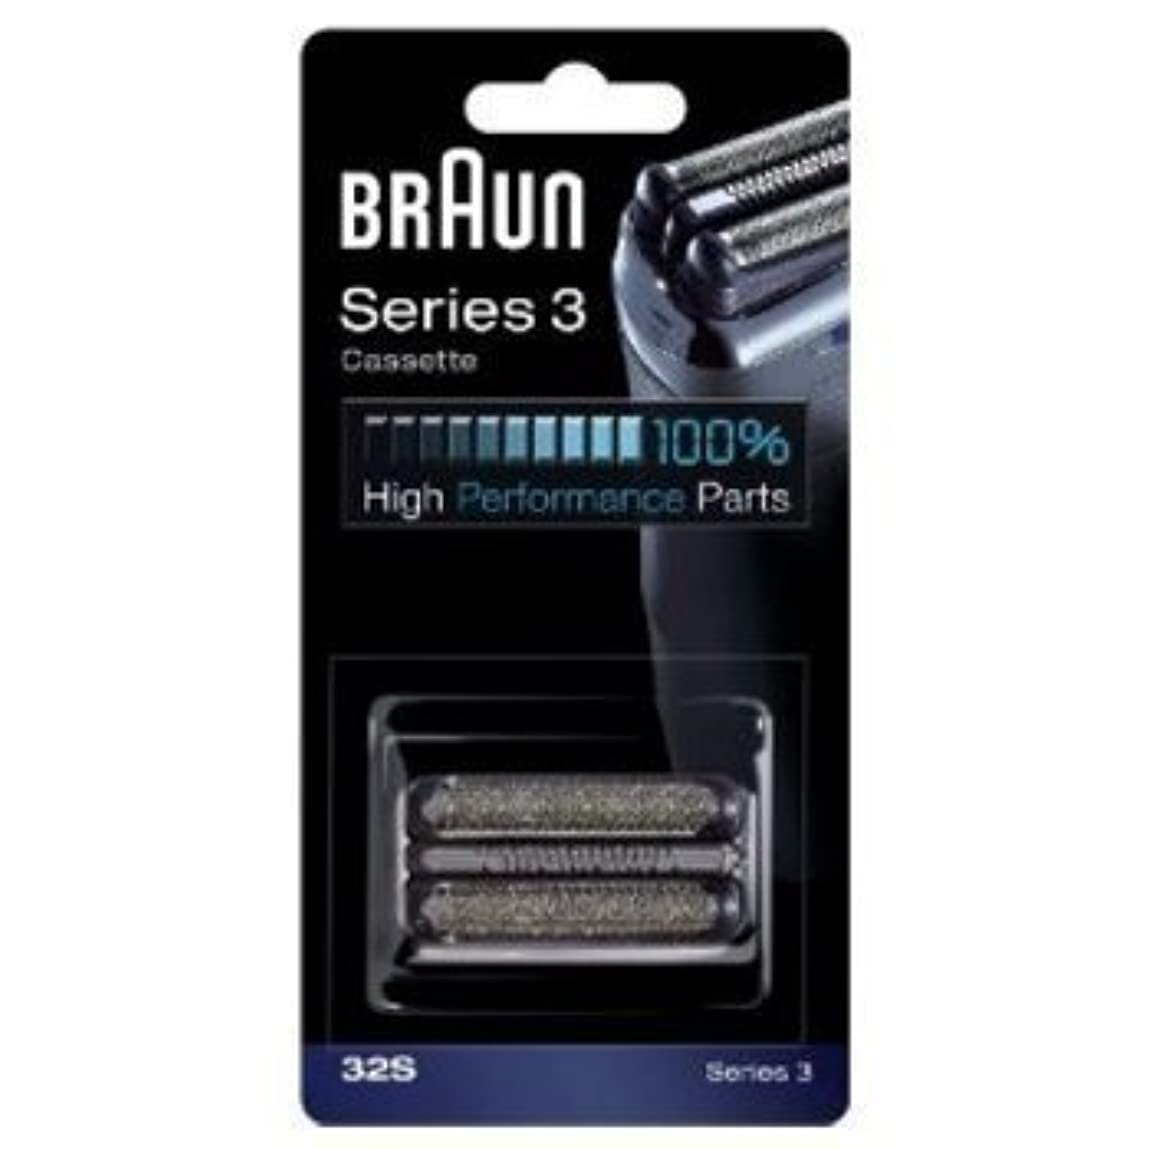 バランスのとれたパイプ路地Braun 32S Shaver Head Replacement Foil & Cutter Cassette Series 3 (Silver) by Braun [並行輸入品]